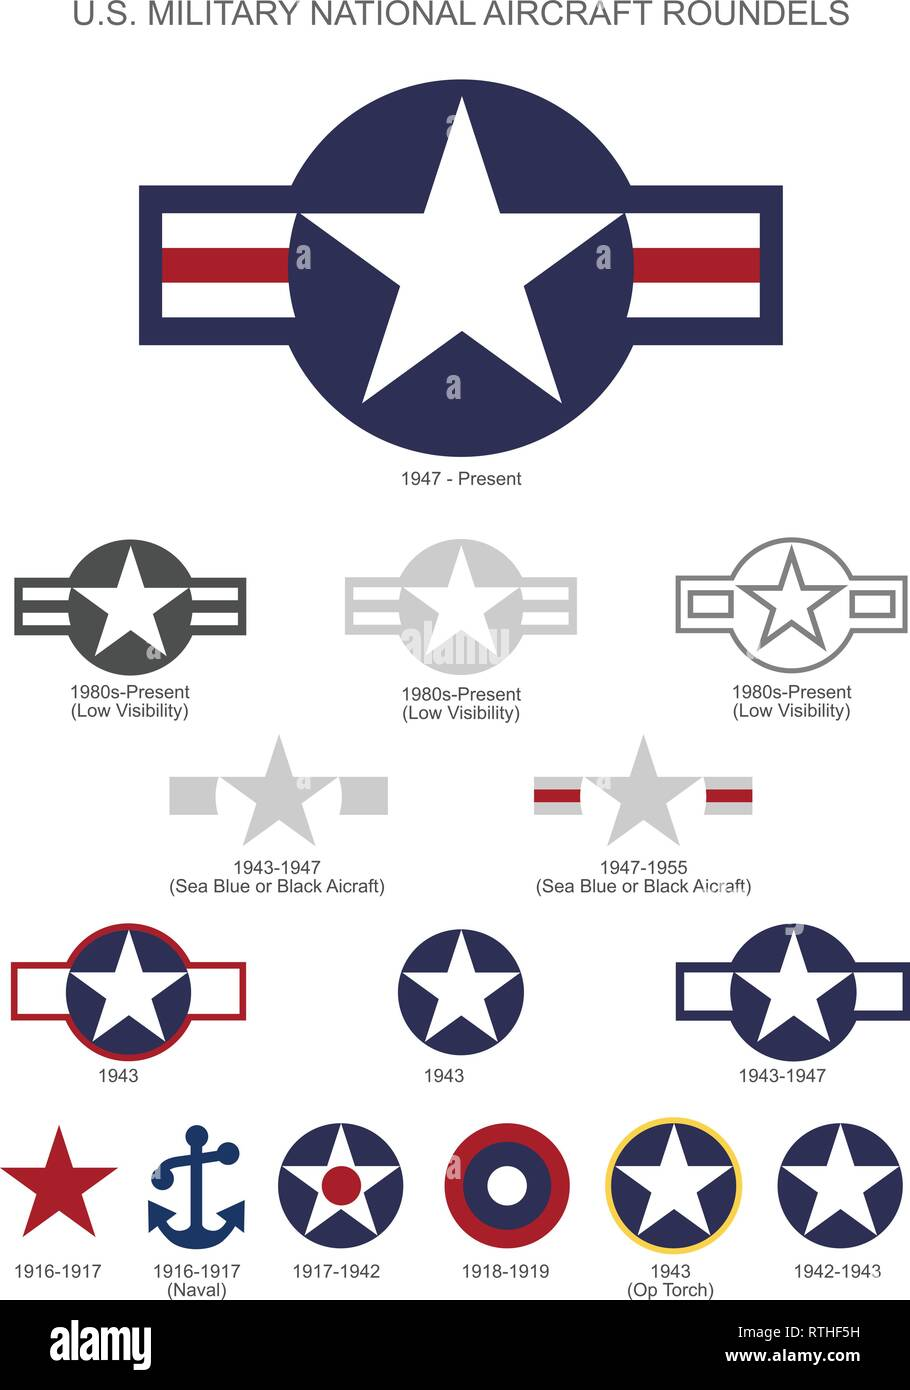 U.S. Military National Aircraft Star Roundels, isolated vector illustration - Stock Vector